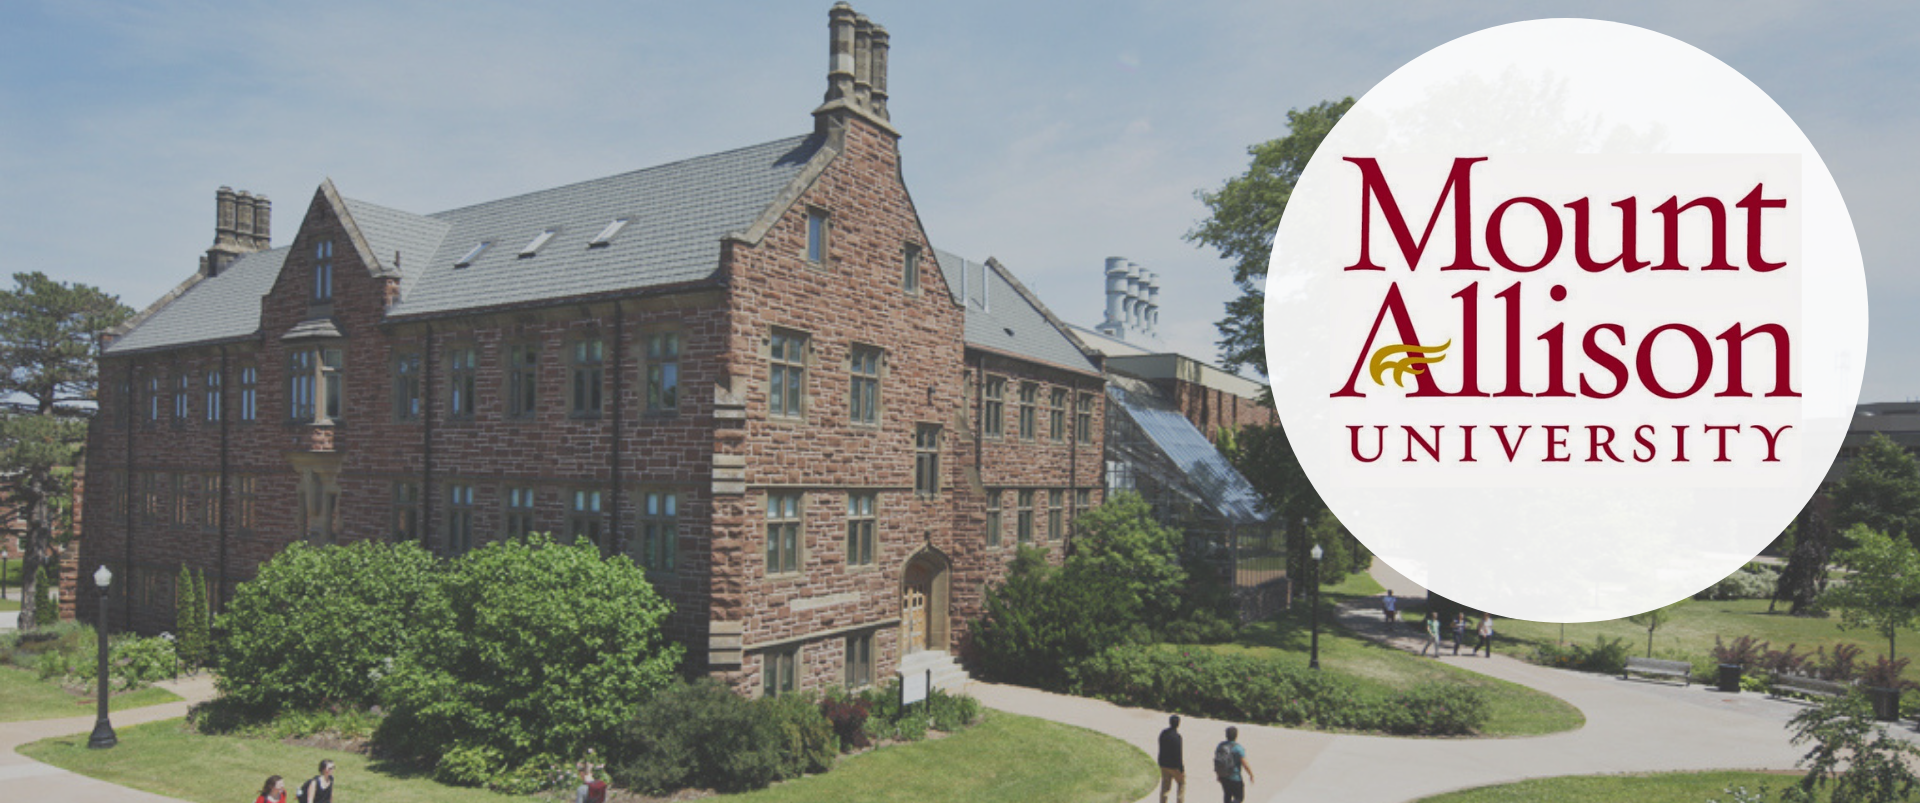 New-Banner-Mount-Allison-University